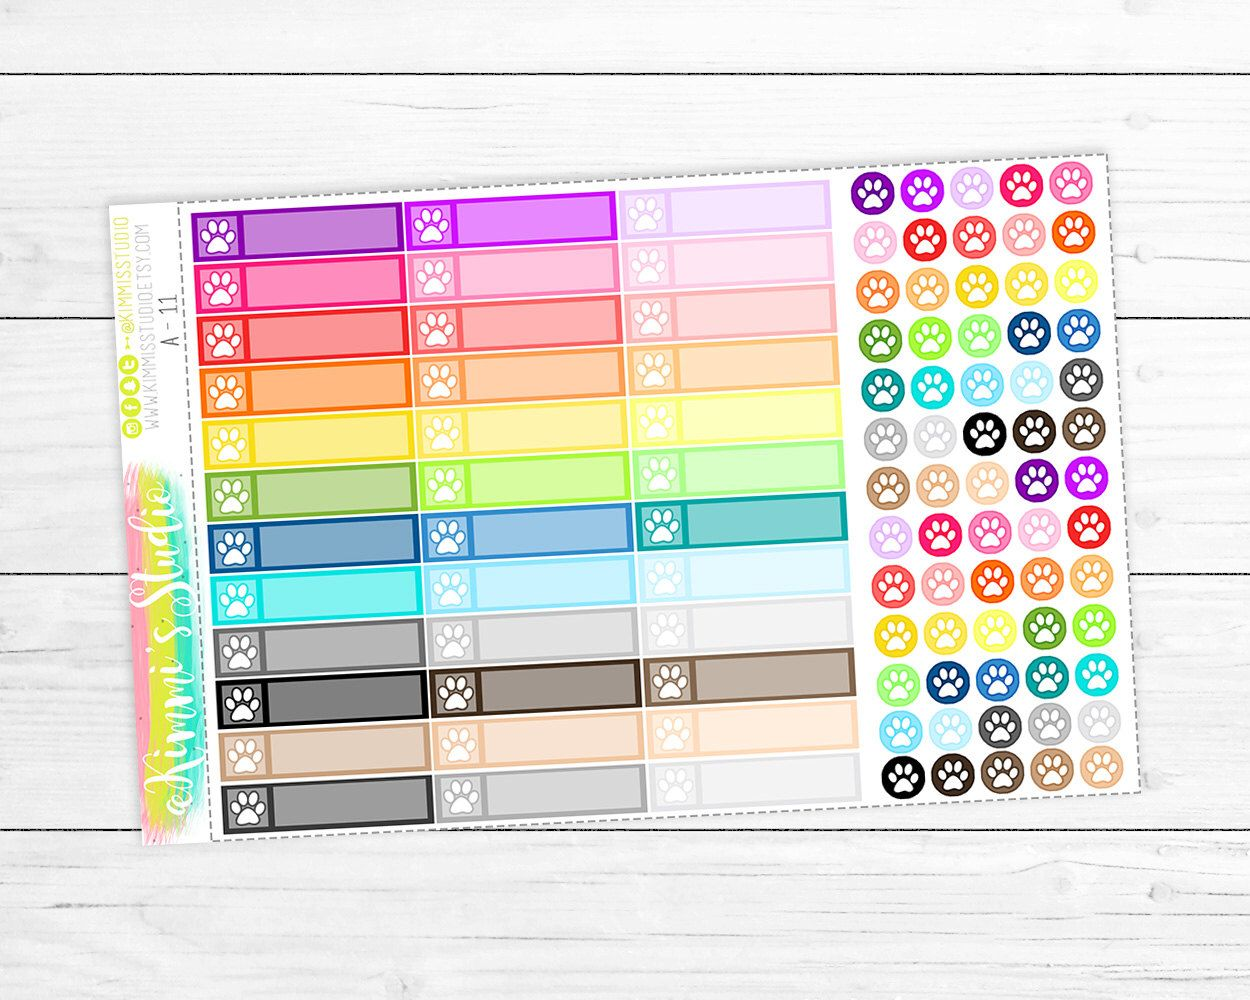 Pet (paw print) Icon Labels and Icon Dots - Perfect for Erin Condren Life Planners! by KimmisStudio on Etsy https://www.etsy.com/listing/285475693/pet-paw-print-icon-labels-and-icon-dots